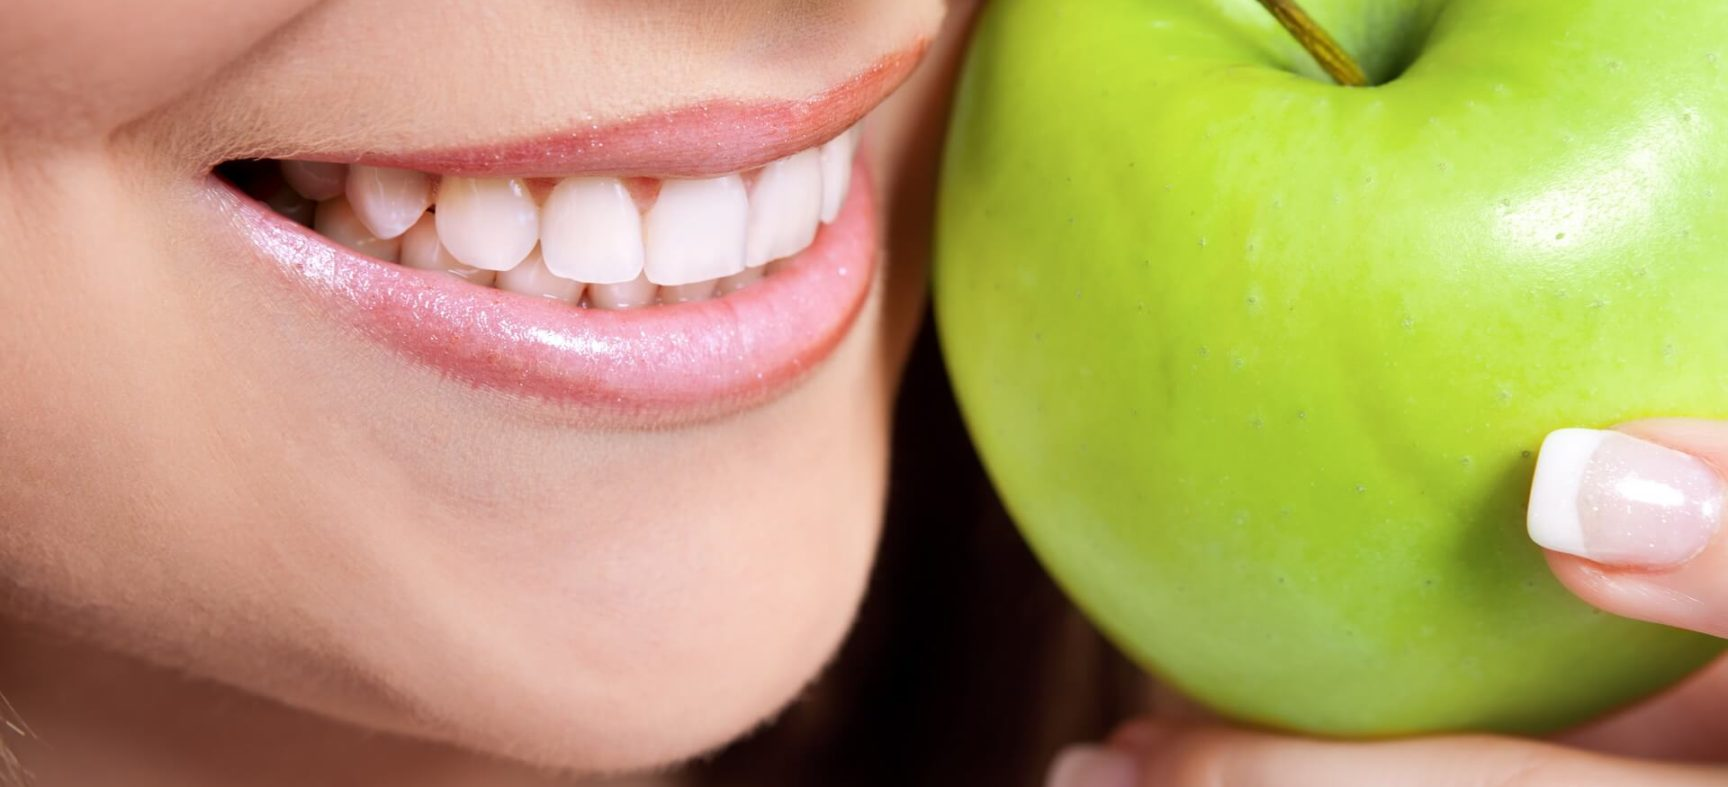 Ways You Can Chip Your Teeth